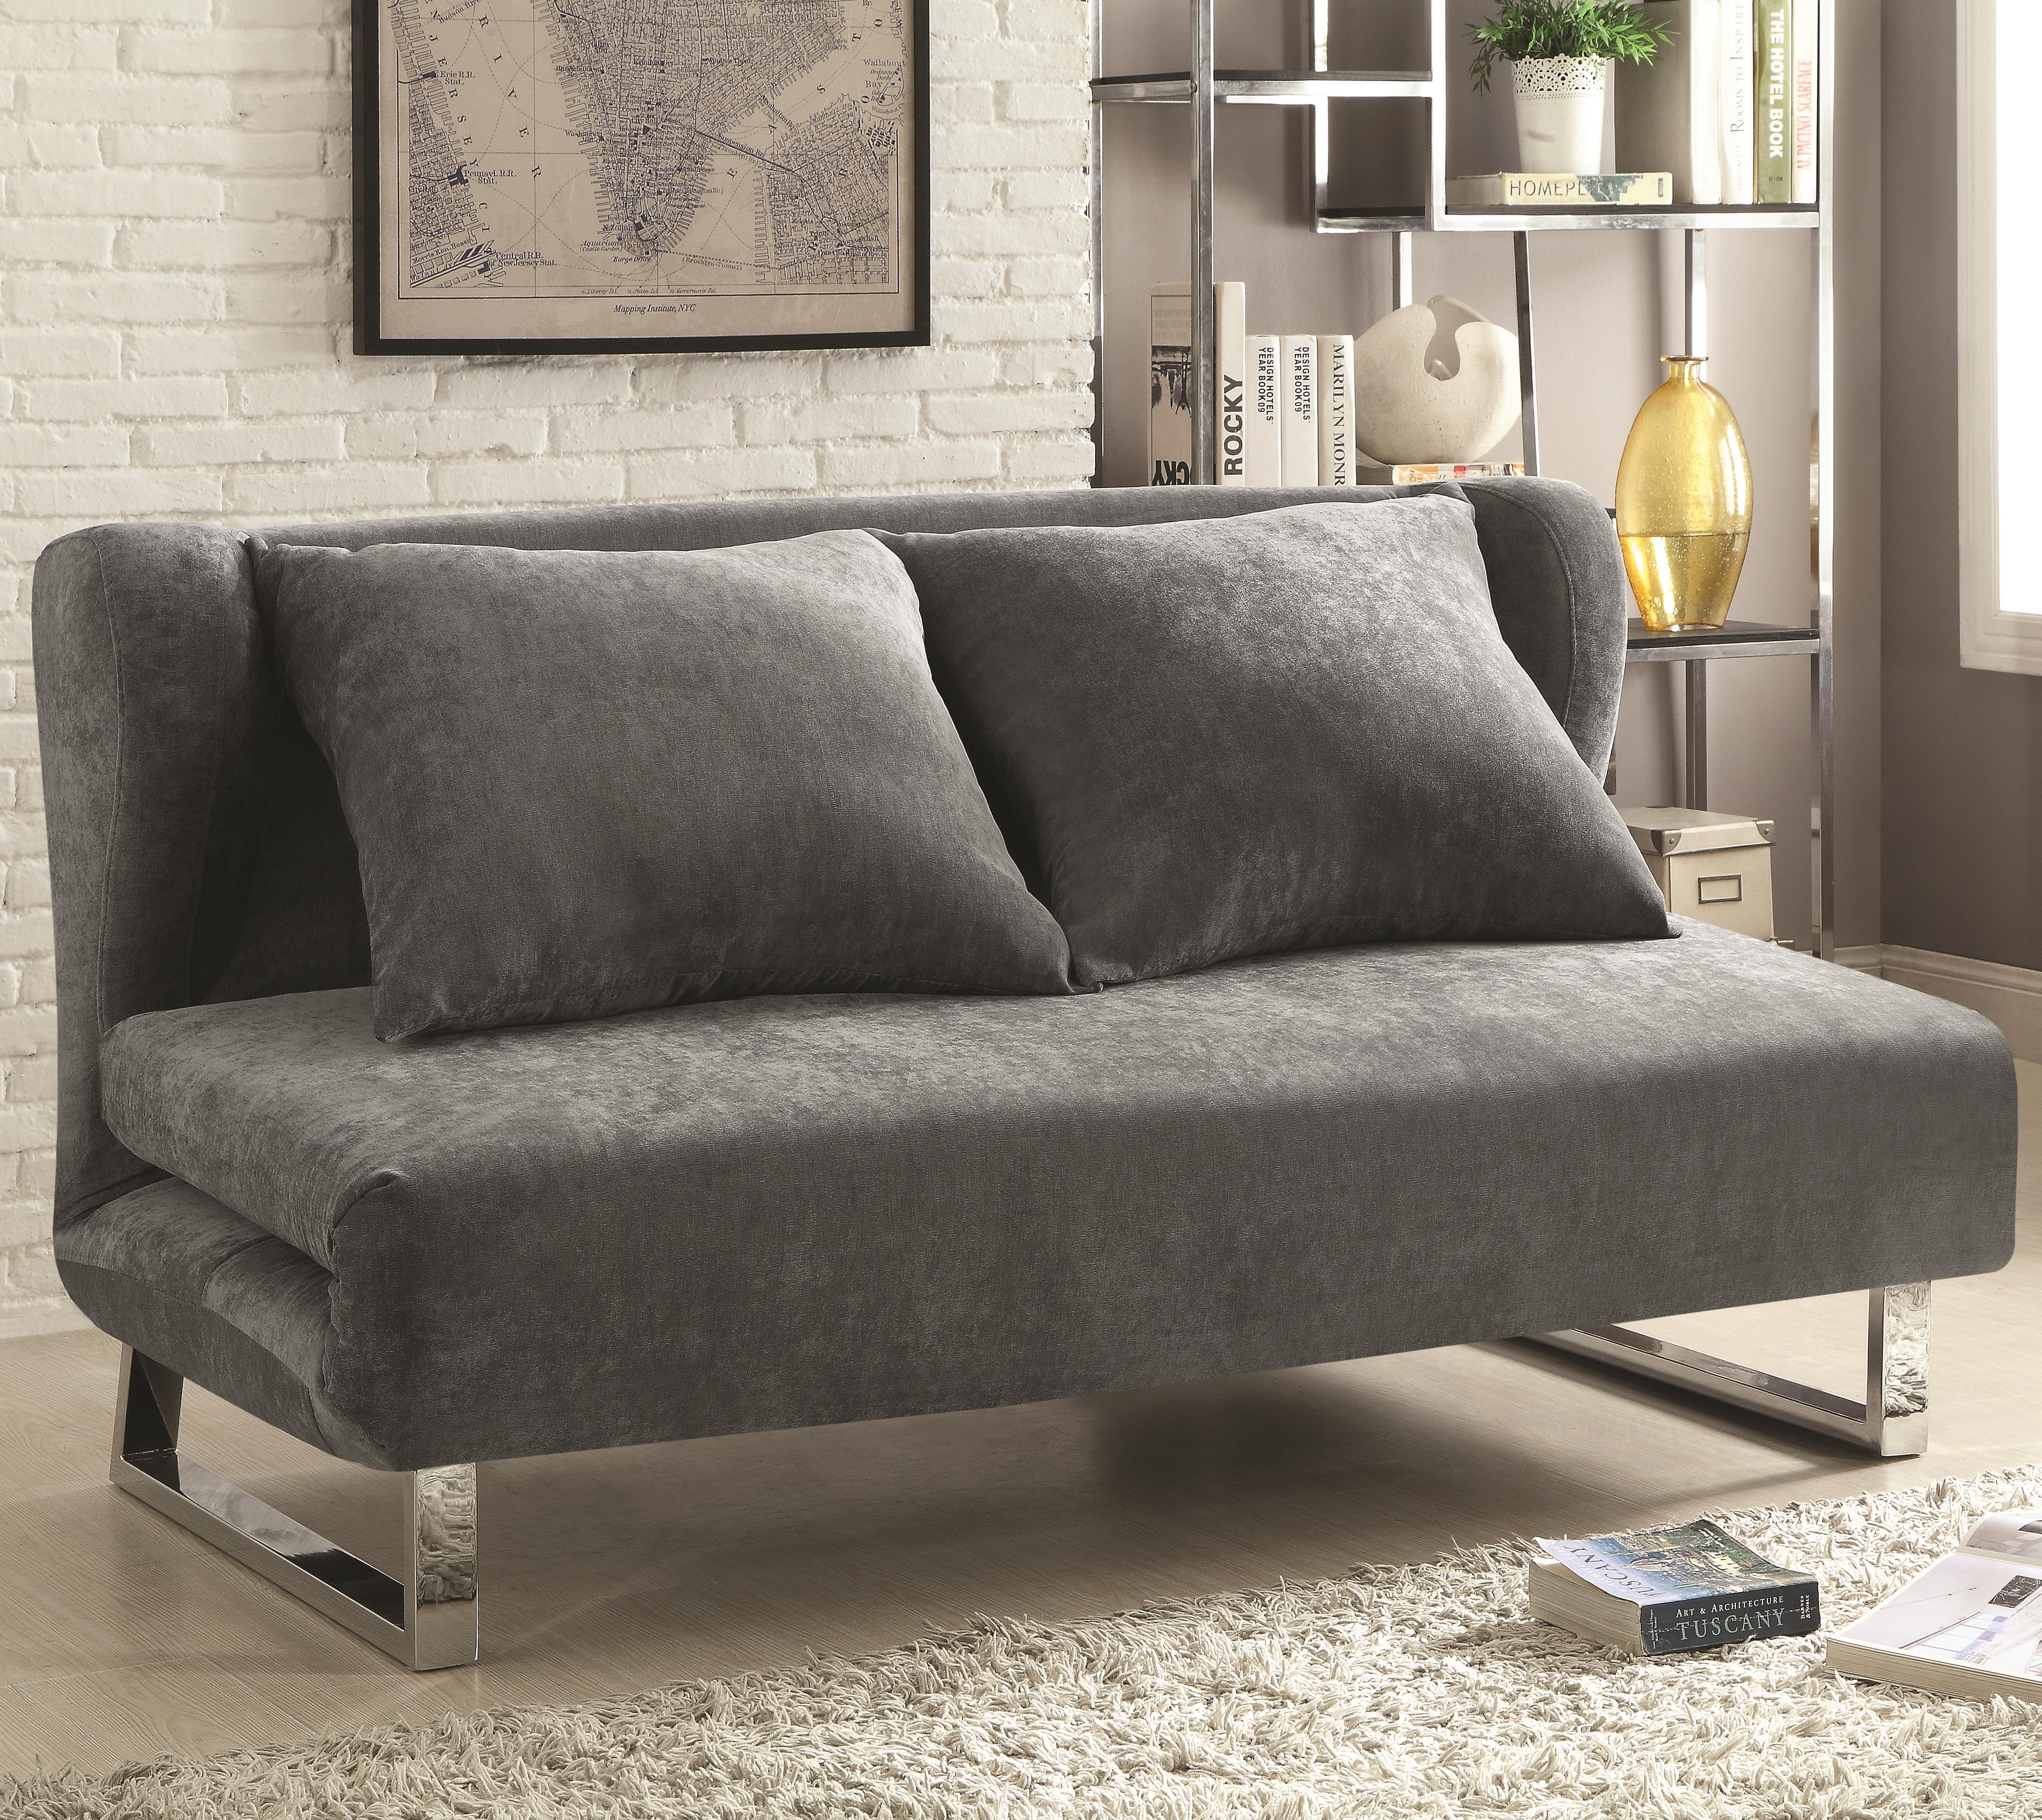 Coaster sofa bed 300276 sofa bed brown by coaster thesofa for Coaster transitional styled sectional sofa sleeper in brown